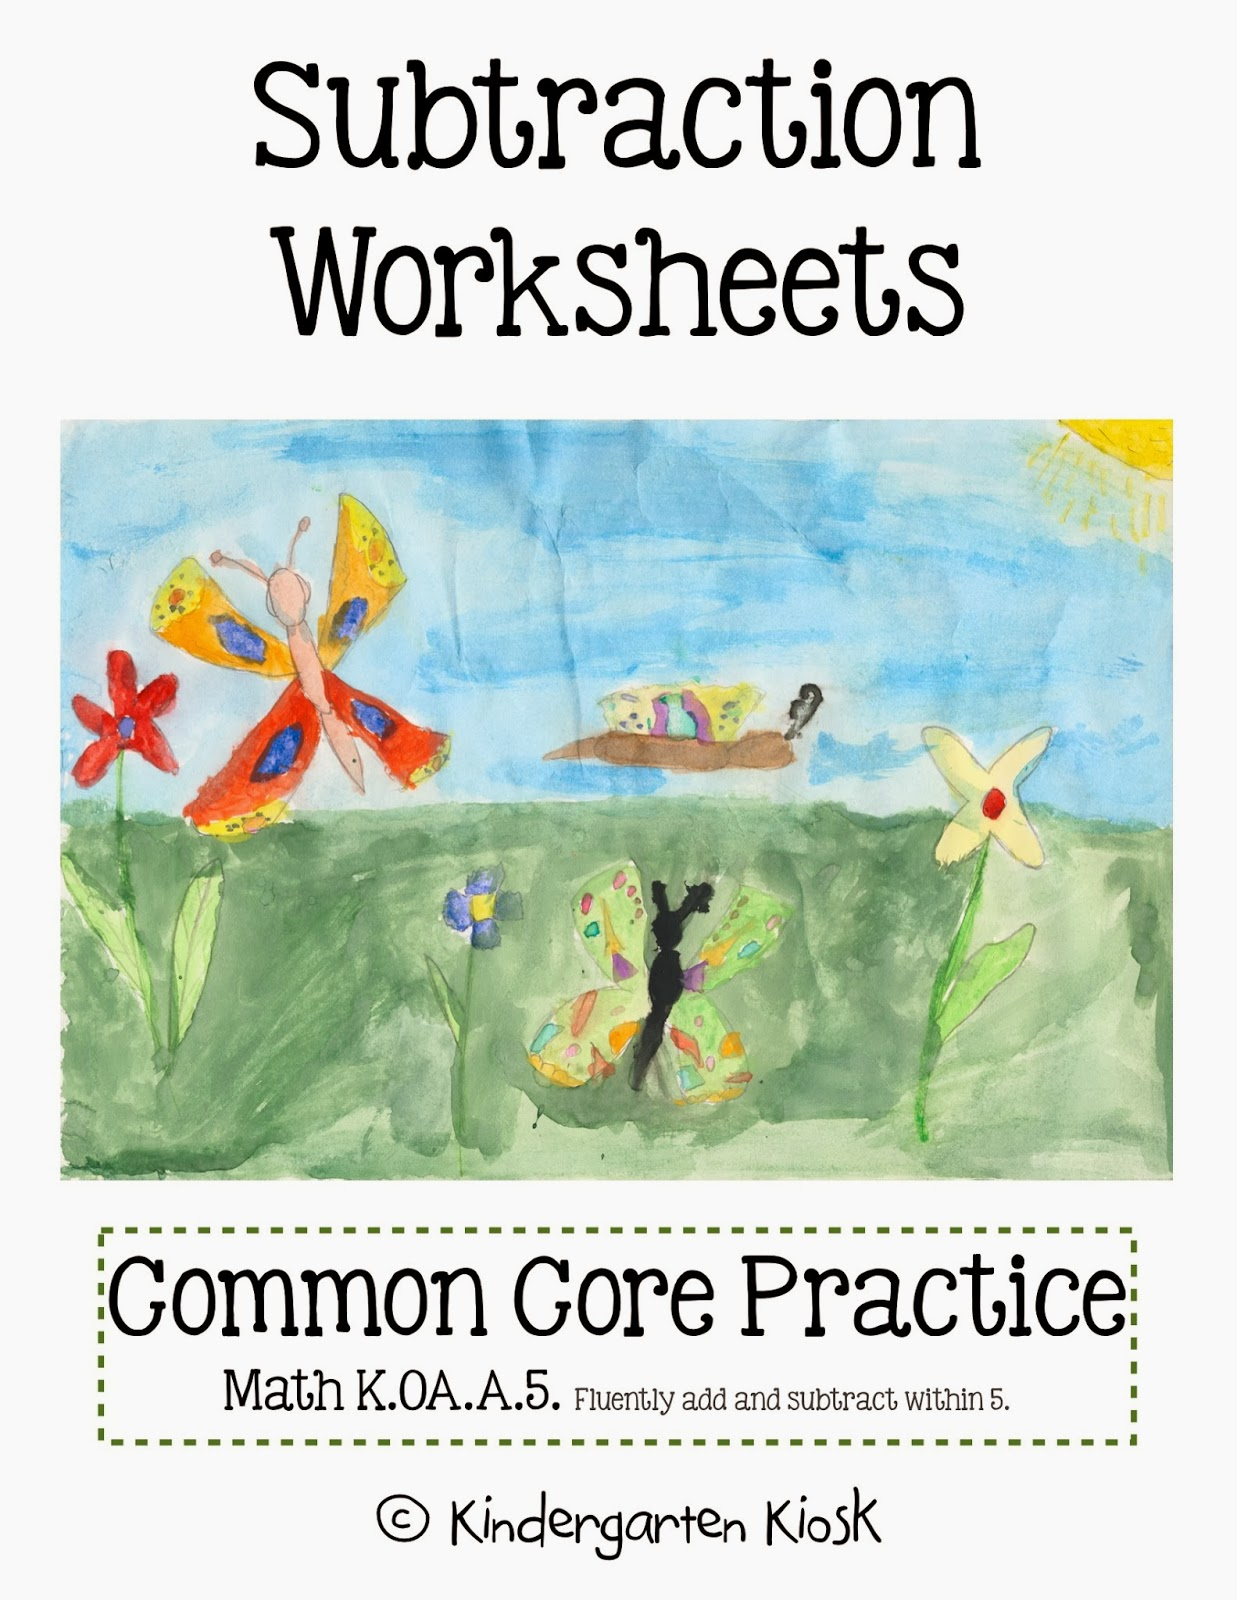 Kindergarten Kiosk Subtraction Worksheets